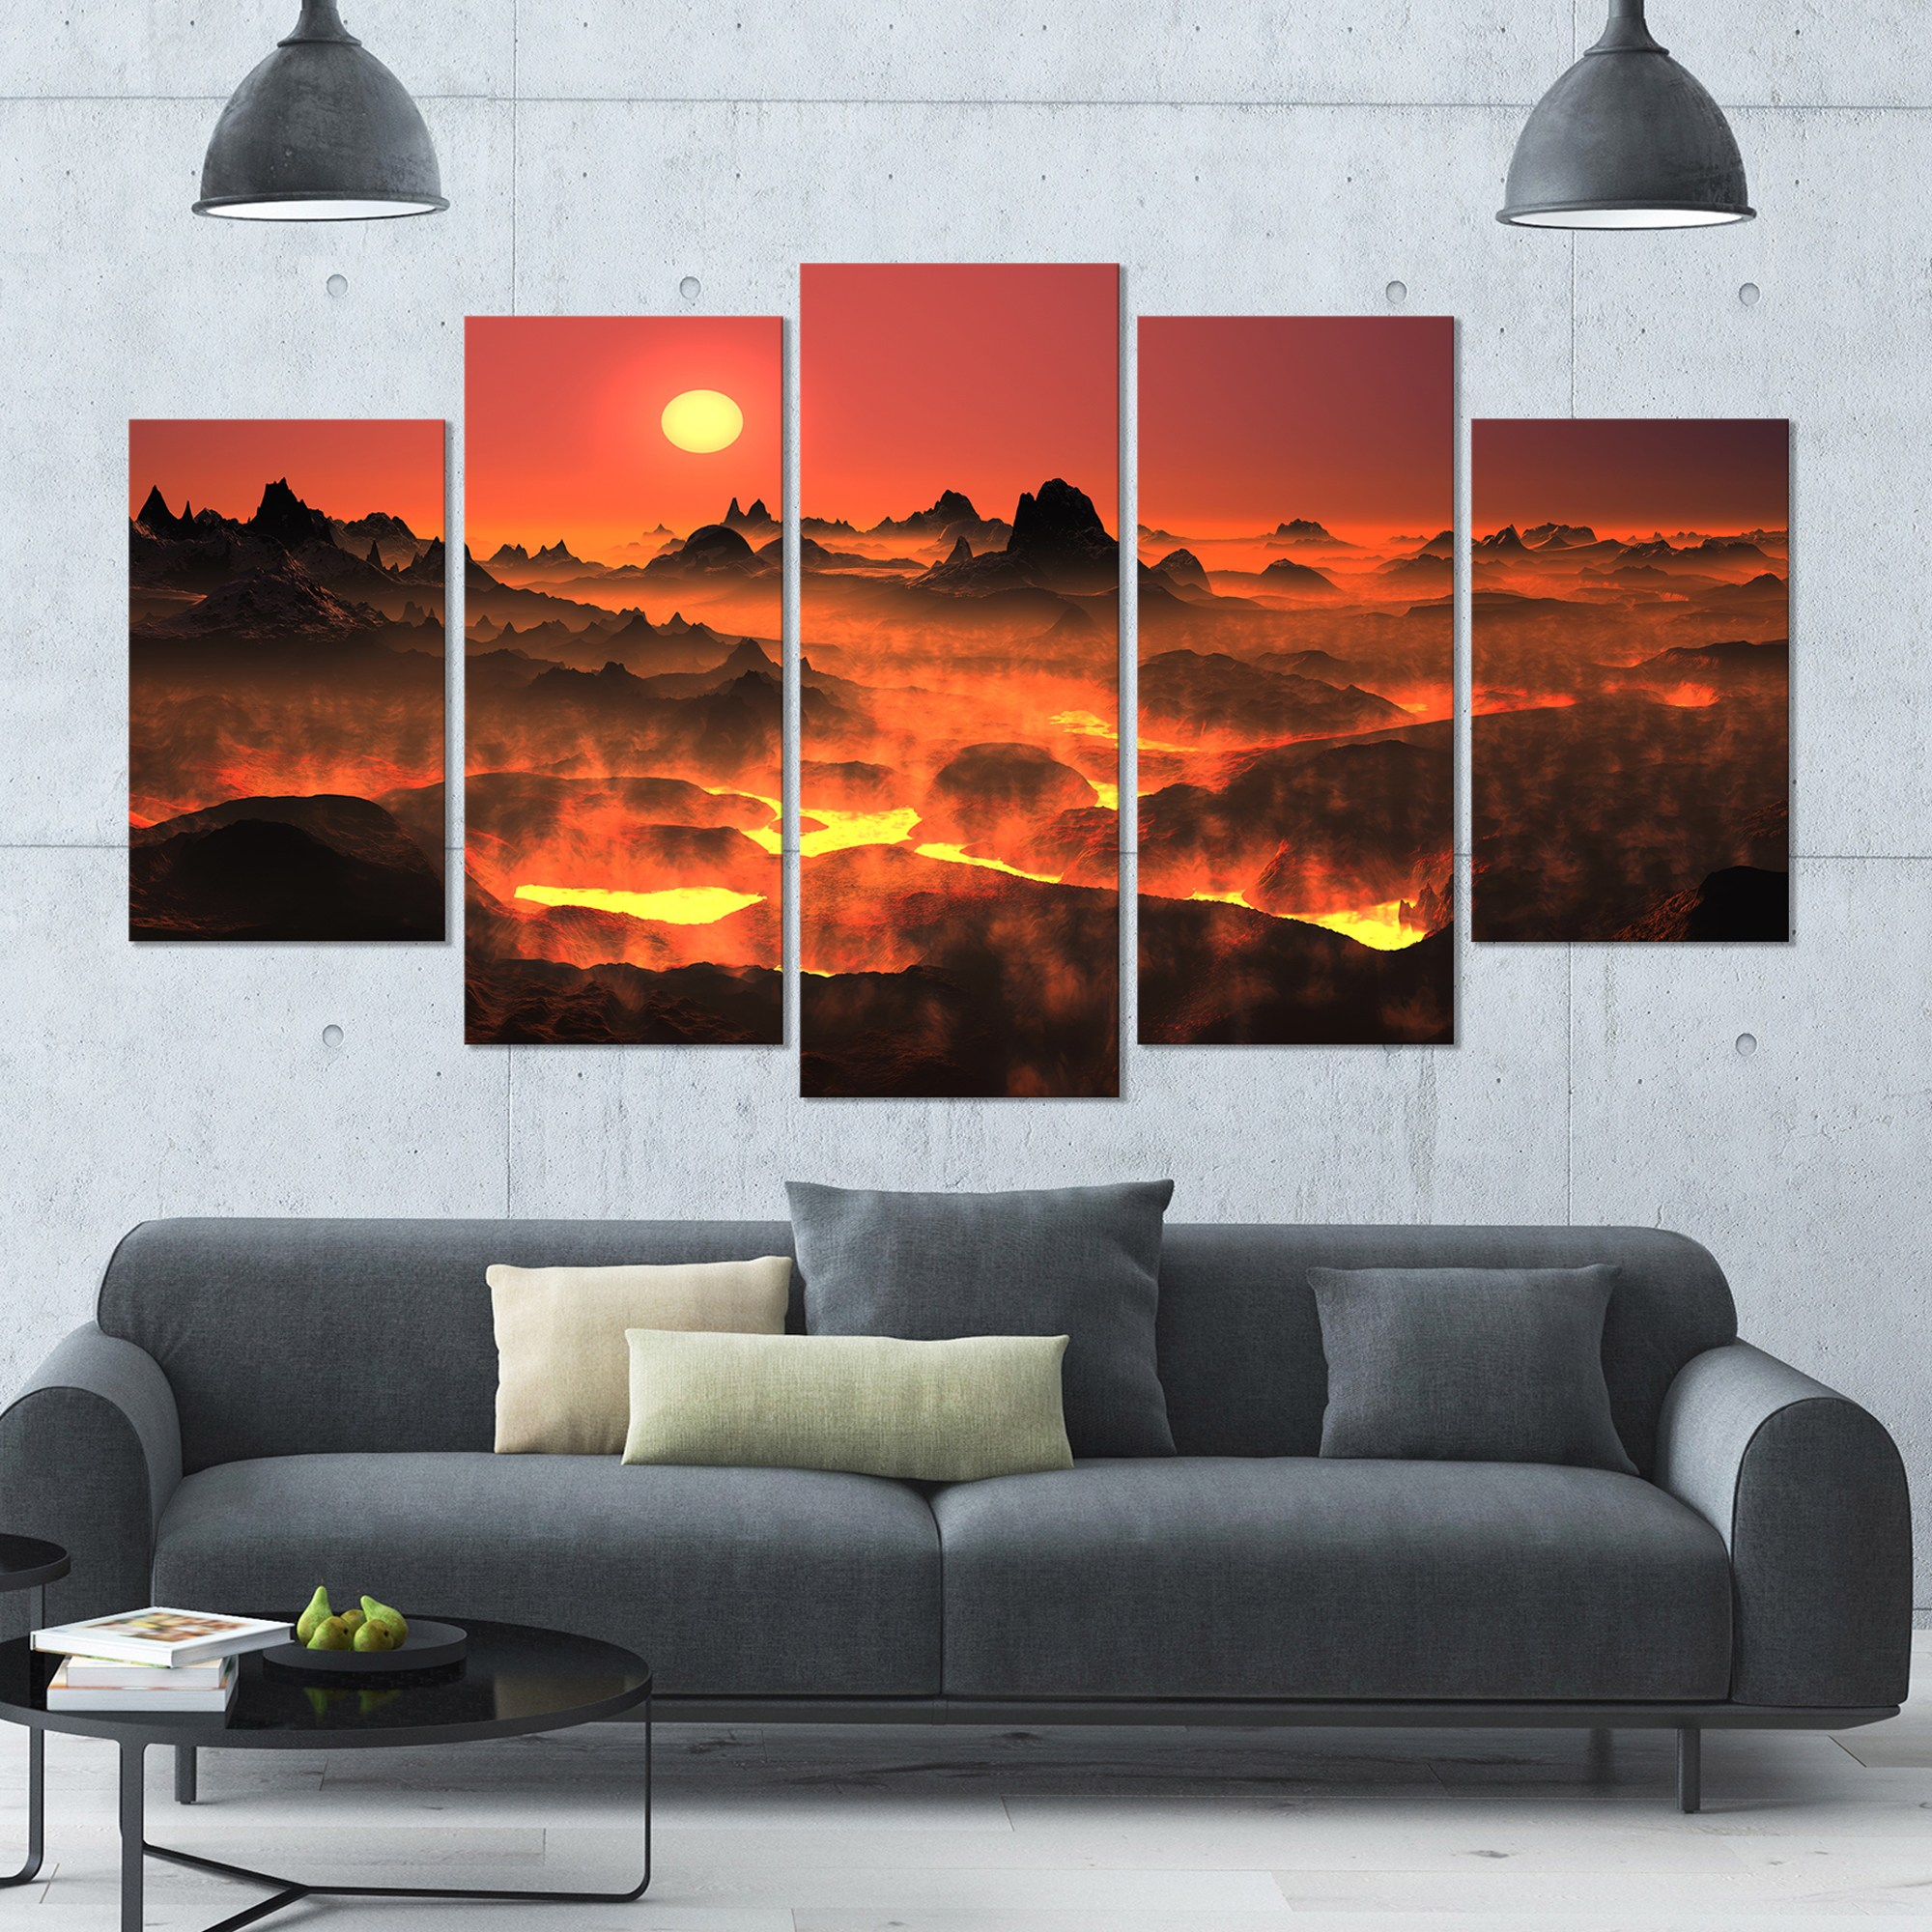 DESIGN ART Designart 'Burning Volcano Country' Landscape Canvas Wall Artwork - 60x32 5 Panels - Multi-color